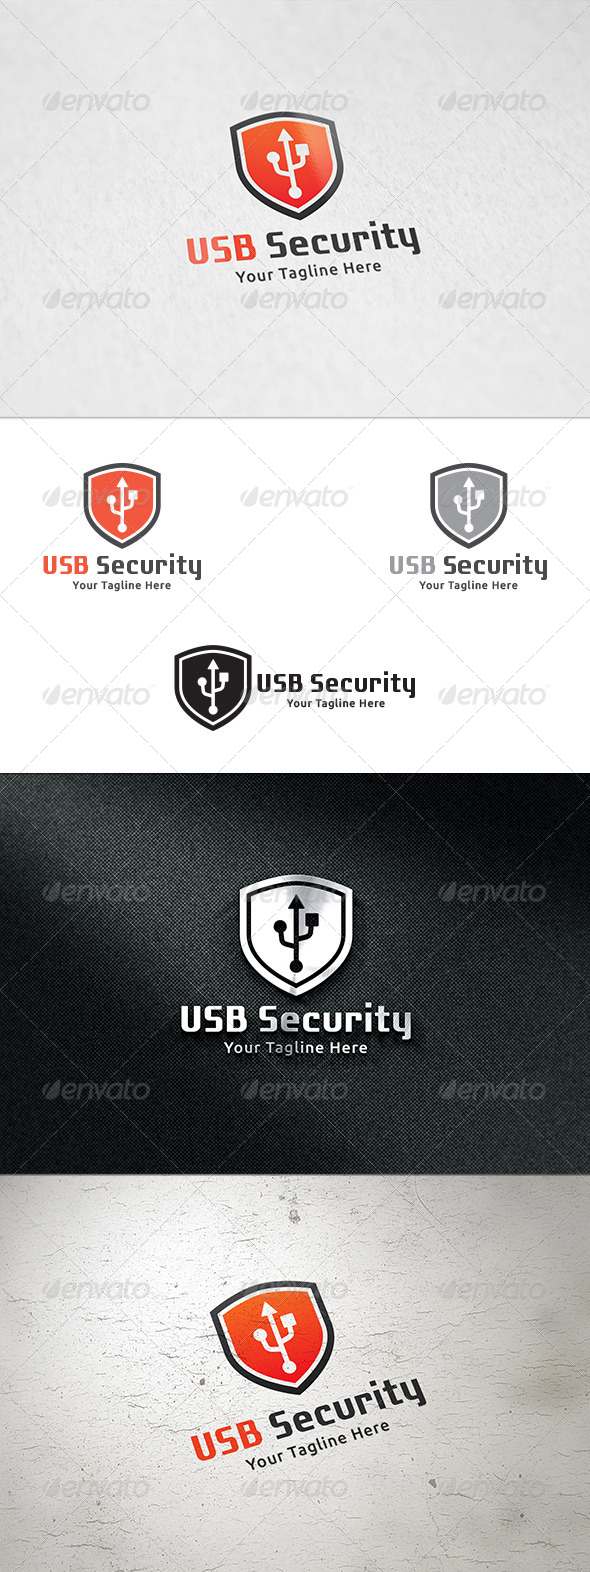 GraphicRiver USB Security Logo Template 8542715